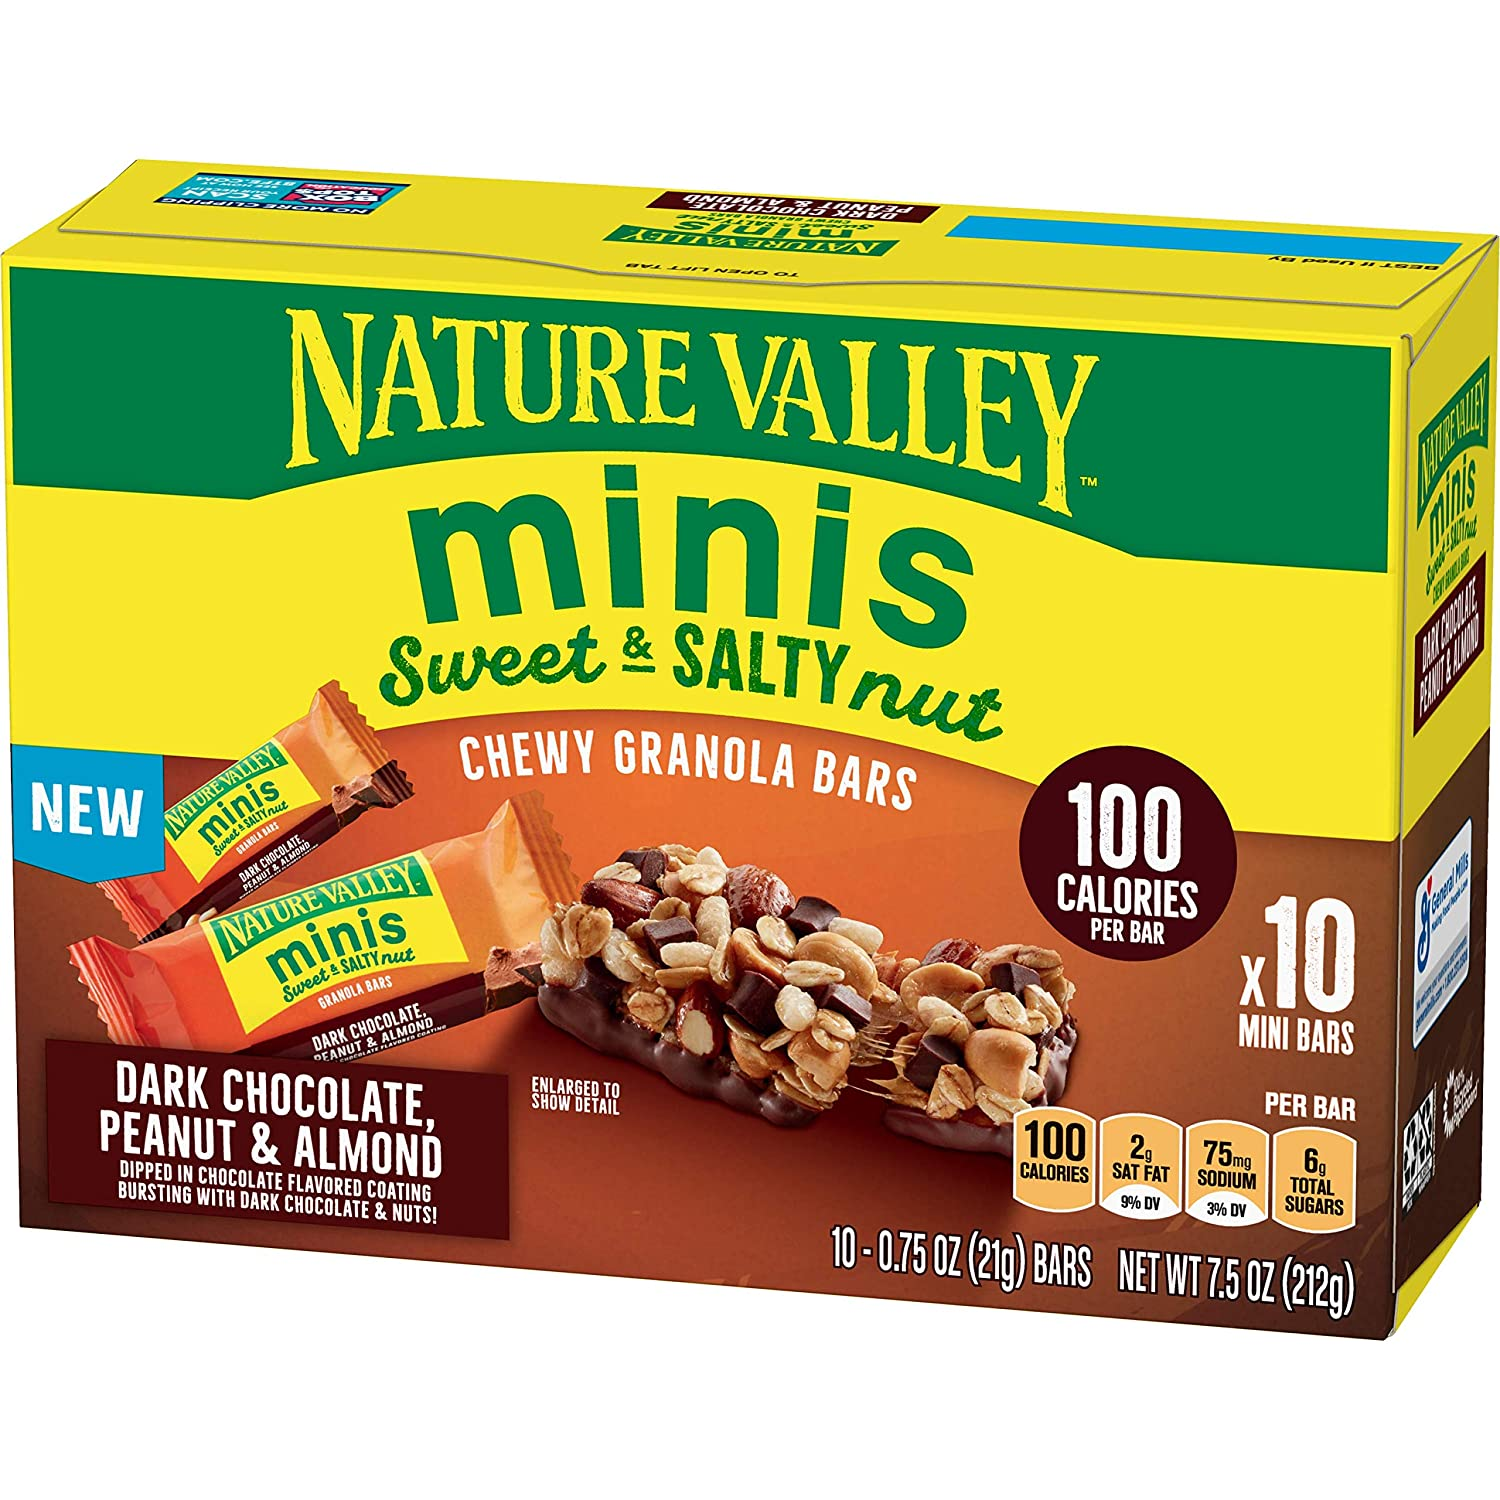 Nature Valley Sweet & Salty Nut Minis, Dark Chocolate Peanut & Almond, 7.5 oz